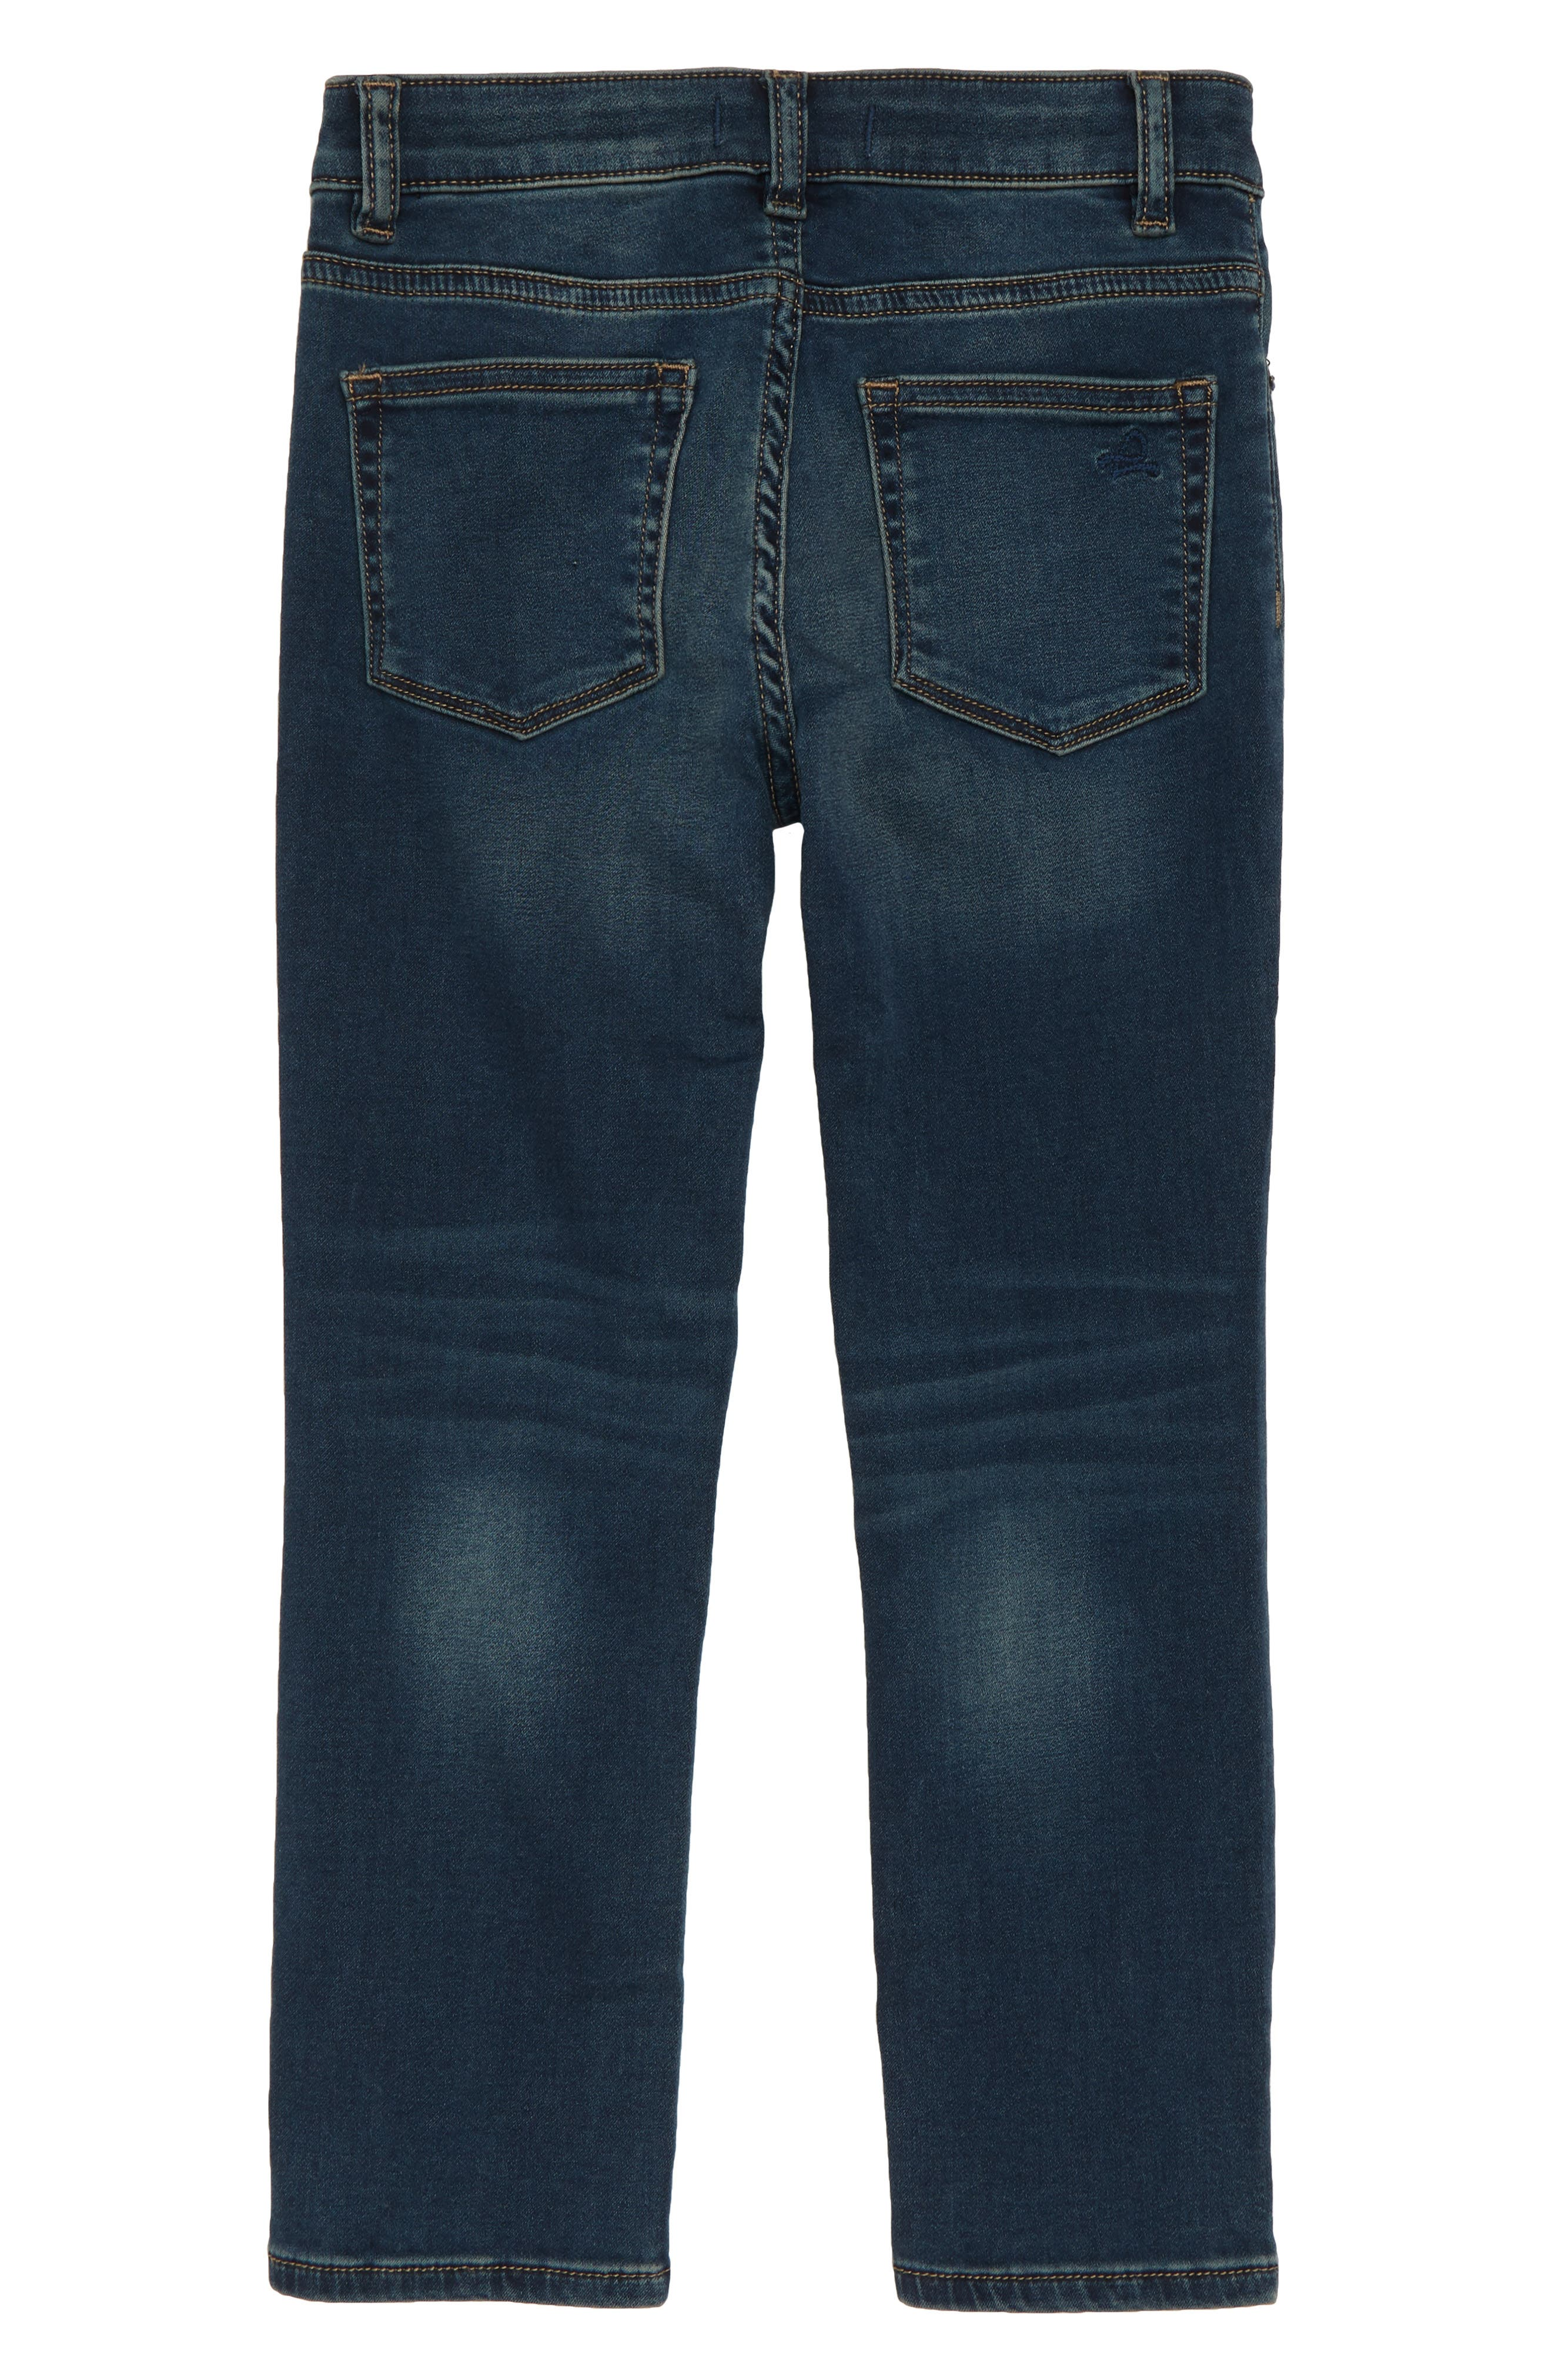 Brady Slim Fit Jeans,                             Alternate thumbnail 2, color,                             VIBES